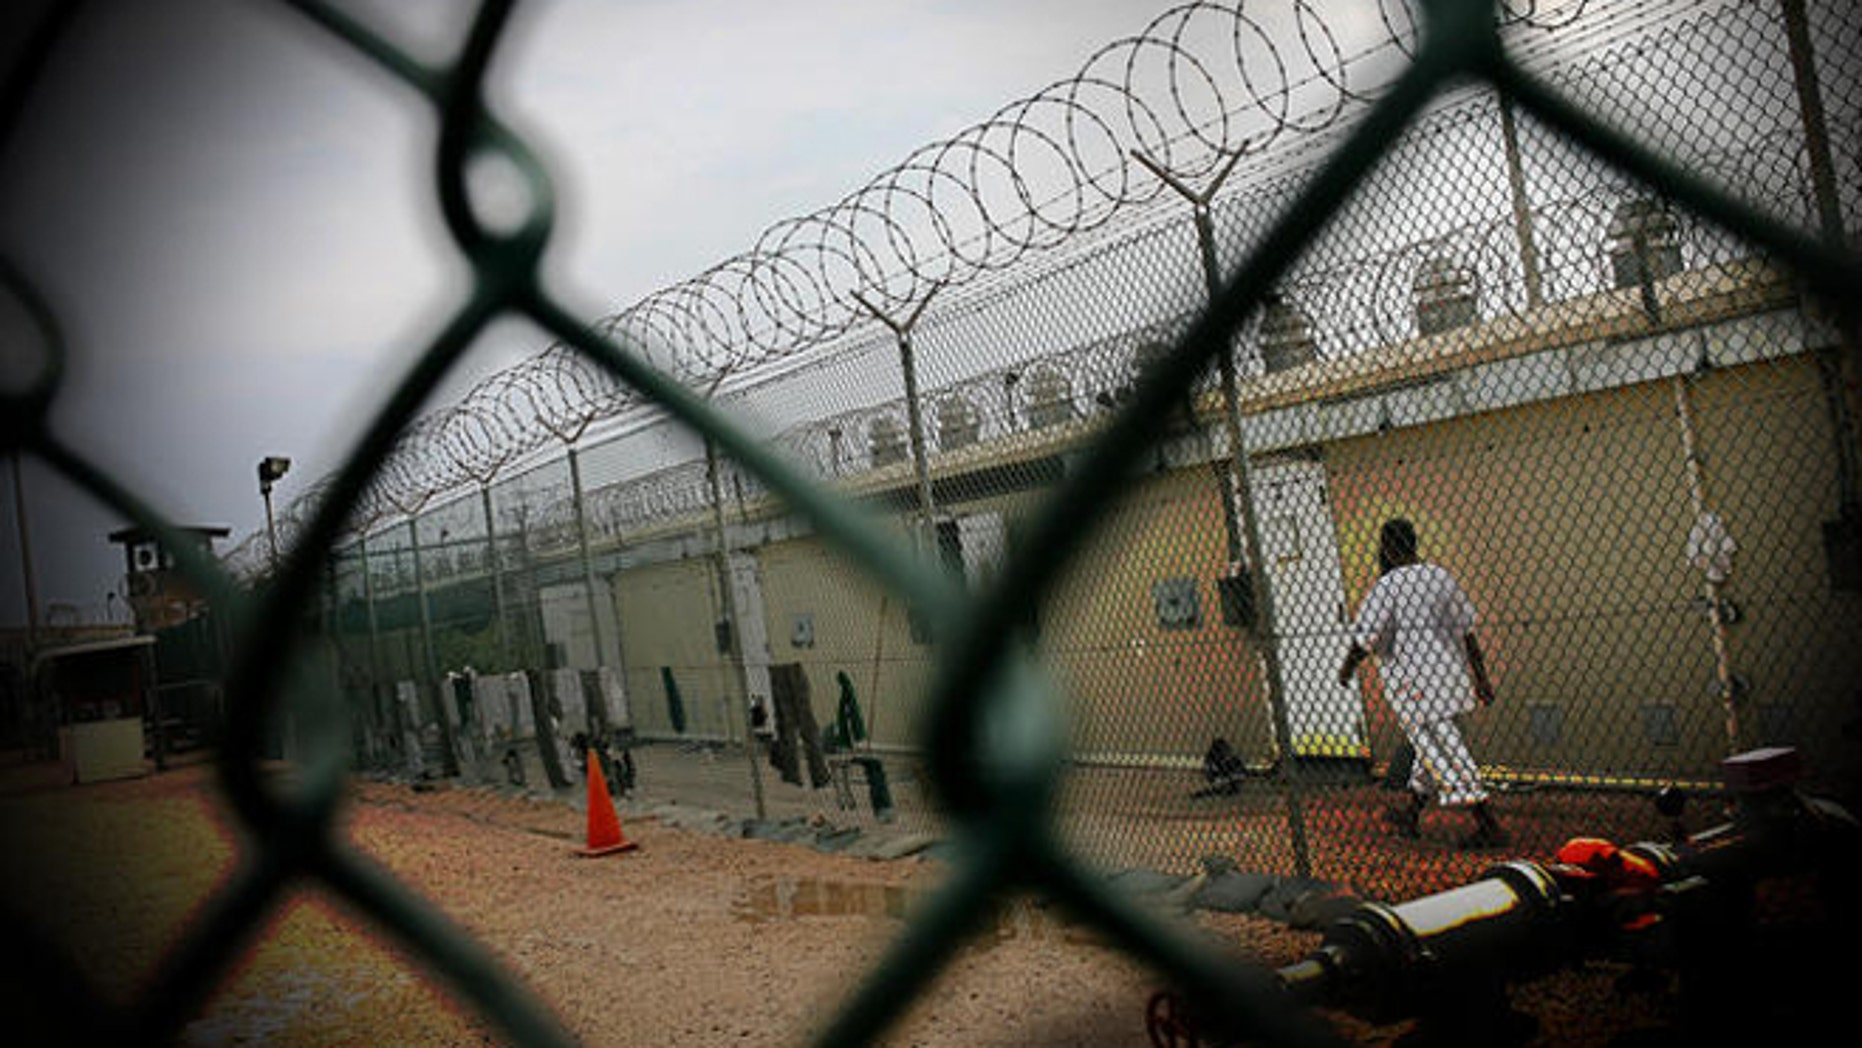 A detainee walks in Camp 4 at the Guantanamo Bay US Naval Base in Cuba Wednesday, May 14, 2008. Camp 4 is a medium security facility for cooperative prisoners who get to wear white uniforms and are allowed to share a cell with up to 9 other detainees. (AP Photo/Rodrigo Abd)